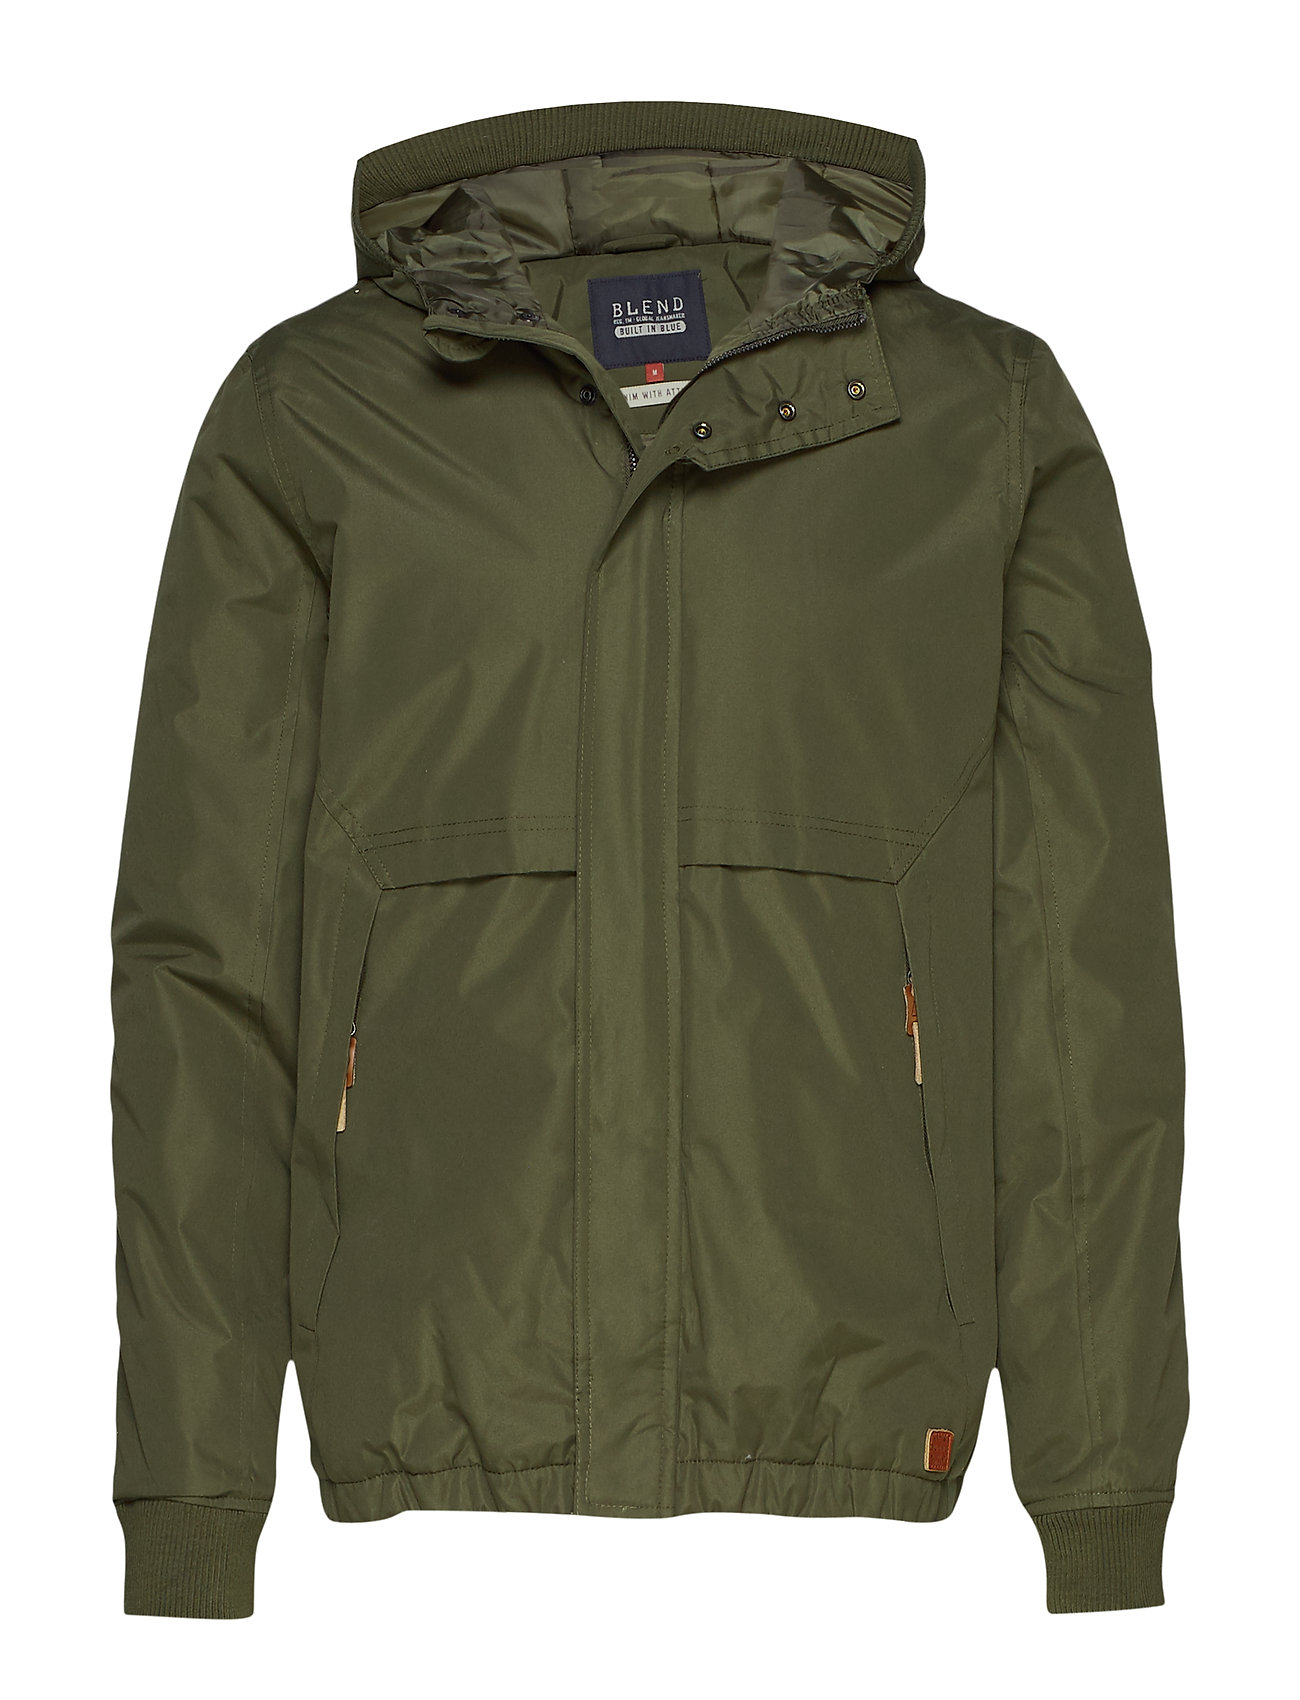 Blend Outerwear - OLIVE NIGHT GREEN